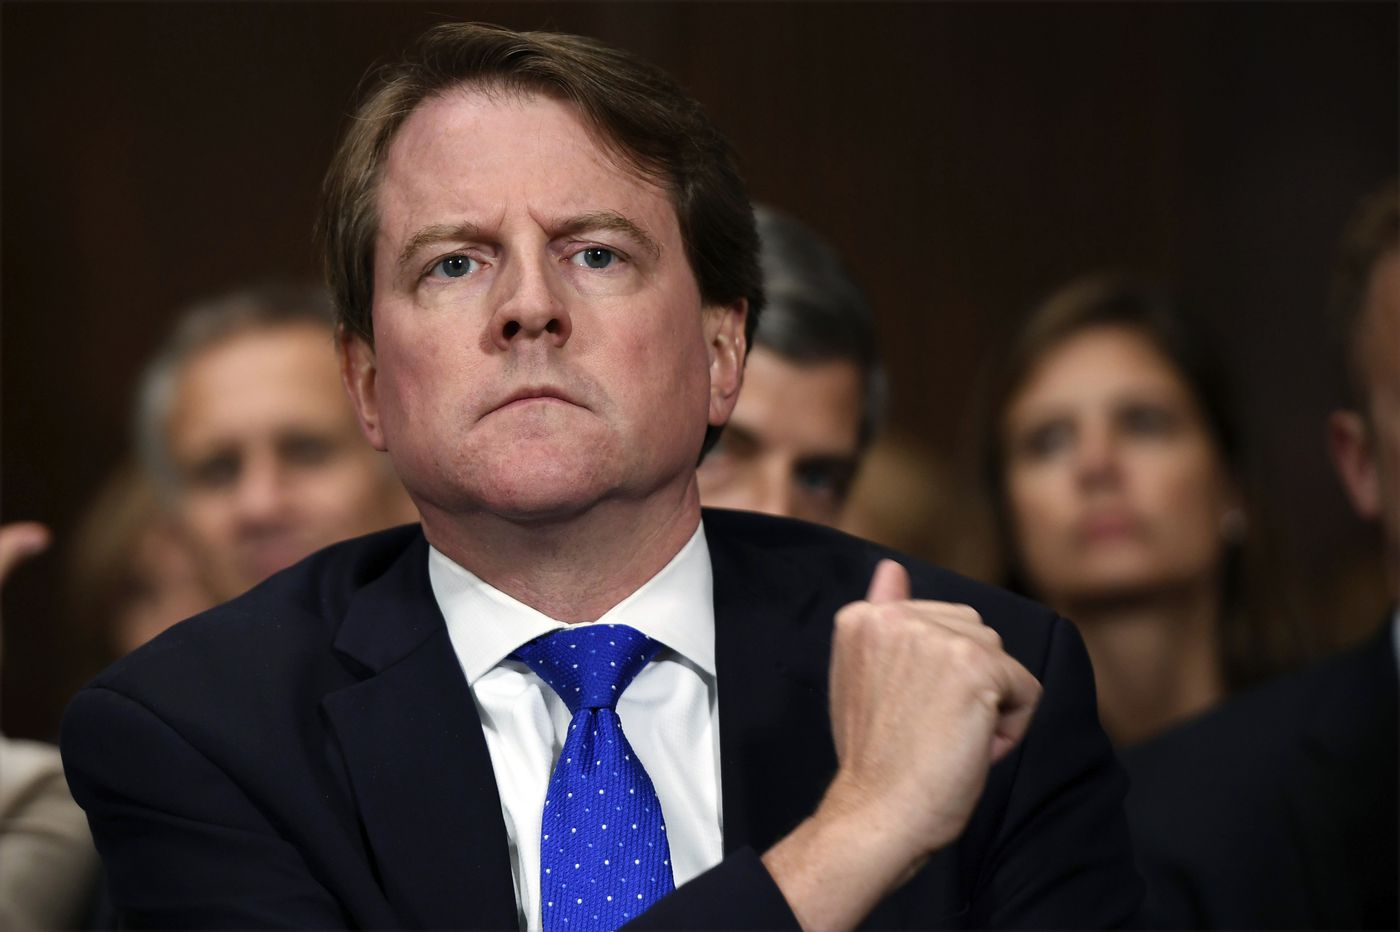 Democrats subpoena former White House lawyer McGahn